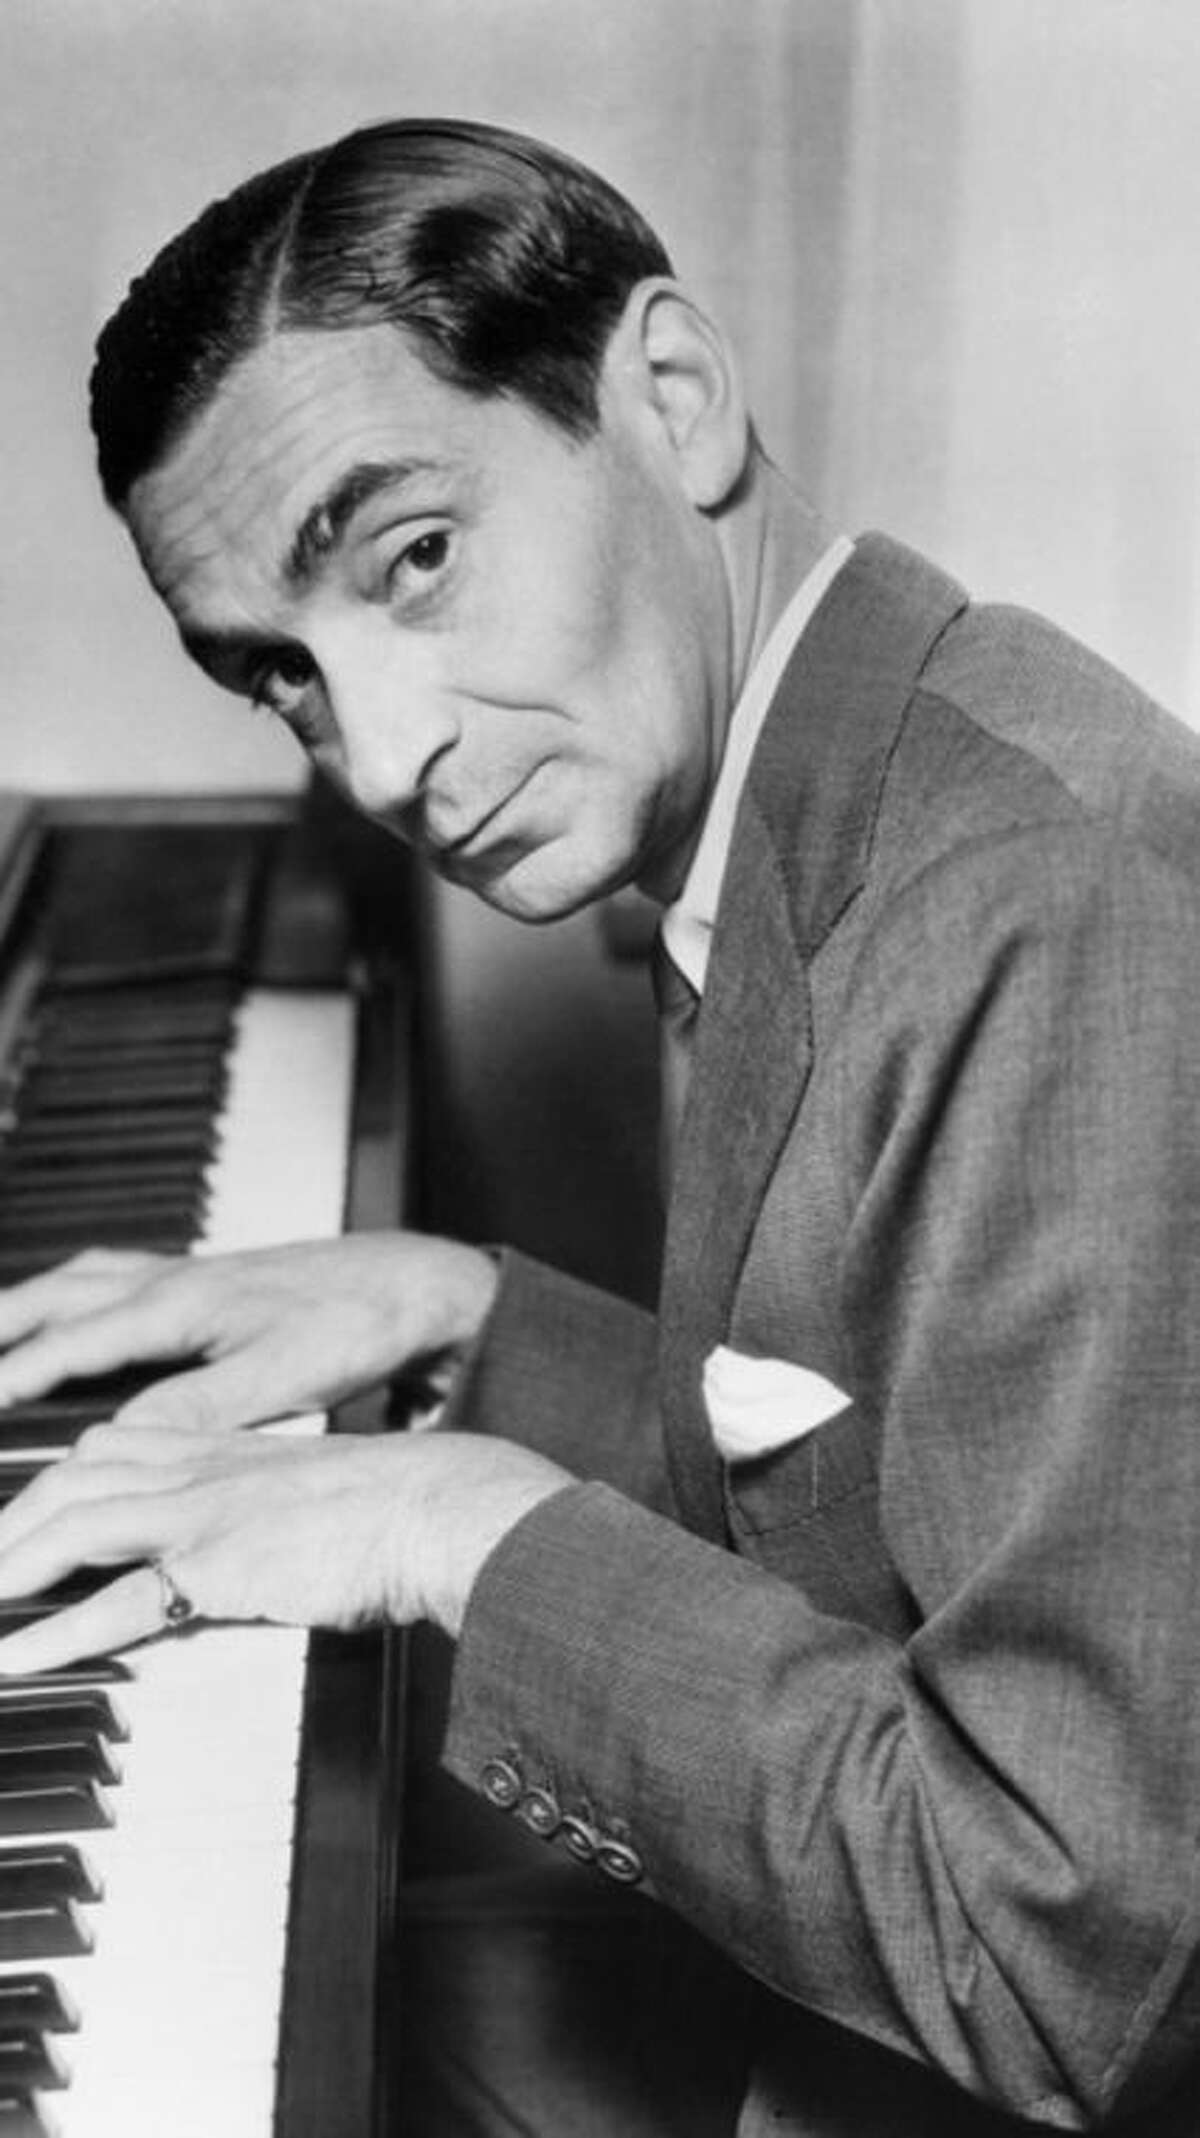 """17 Apr 1935 --- 4/17/35: Irving Berlin, famed composer who has just completed the score for RKO-radio's new musical, """"Top hat,"""" starring Fred Astaire and Ginger Rogers, finds the long lost chord on his piano but doesn't think it will fit a popular song. In fact, he doesn't think, to judge by his expression, it will fit anything. --- Image by © Bettmann/CORBIS"""